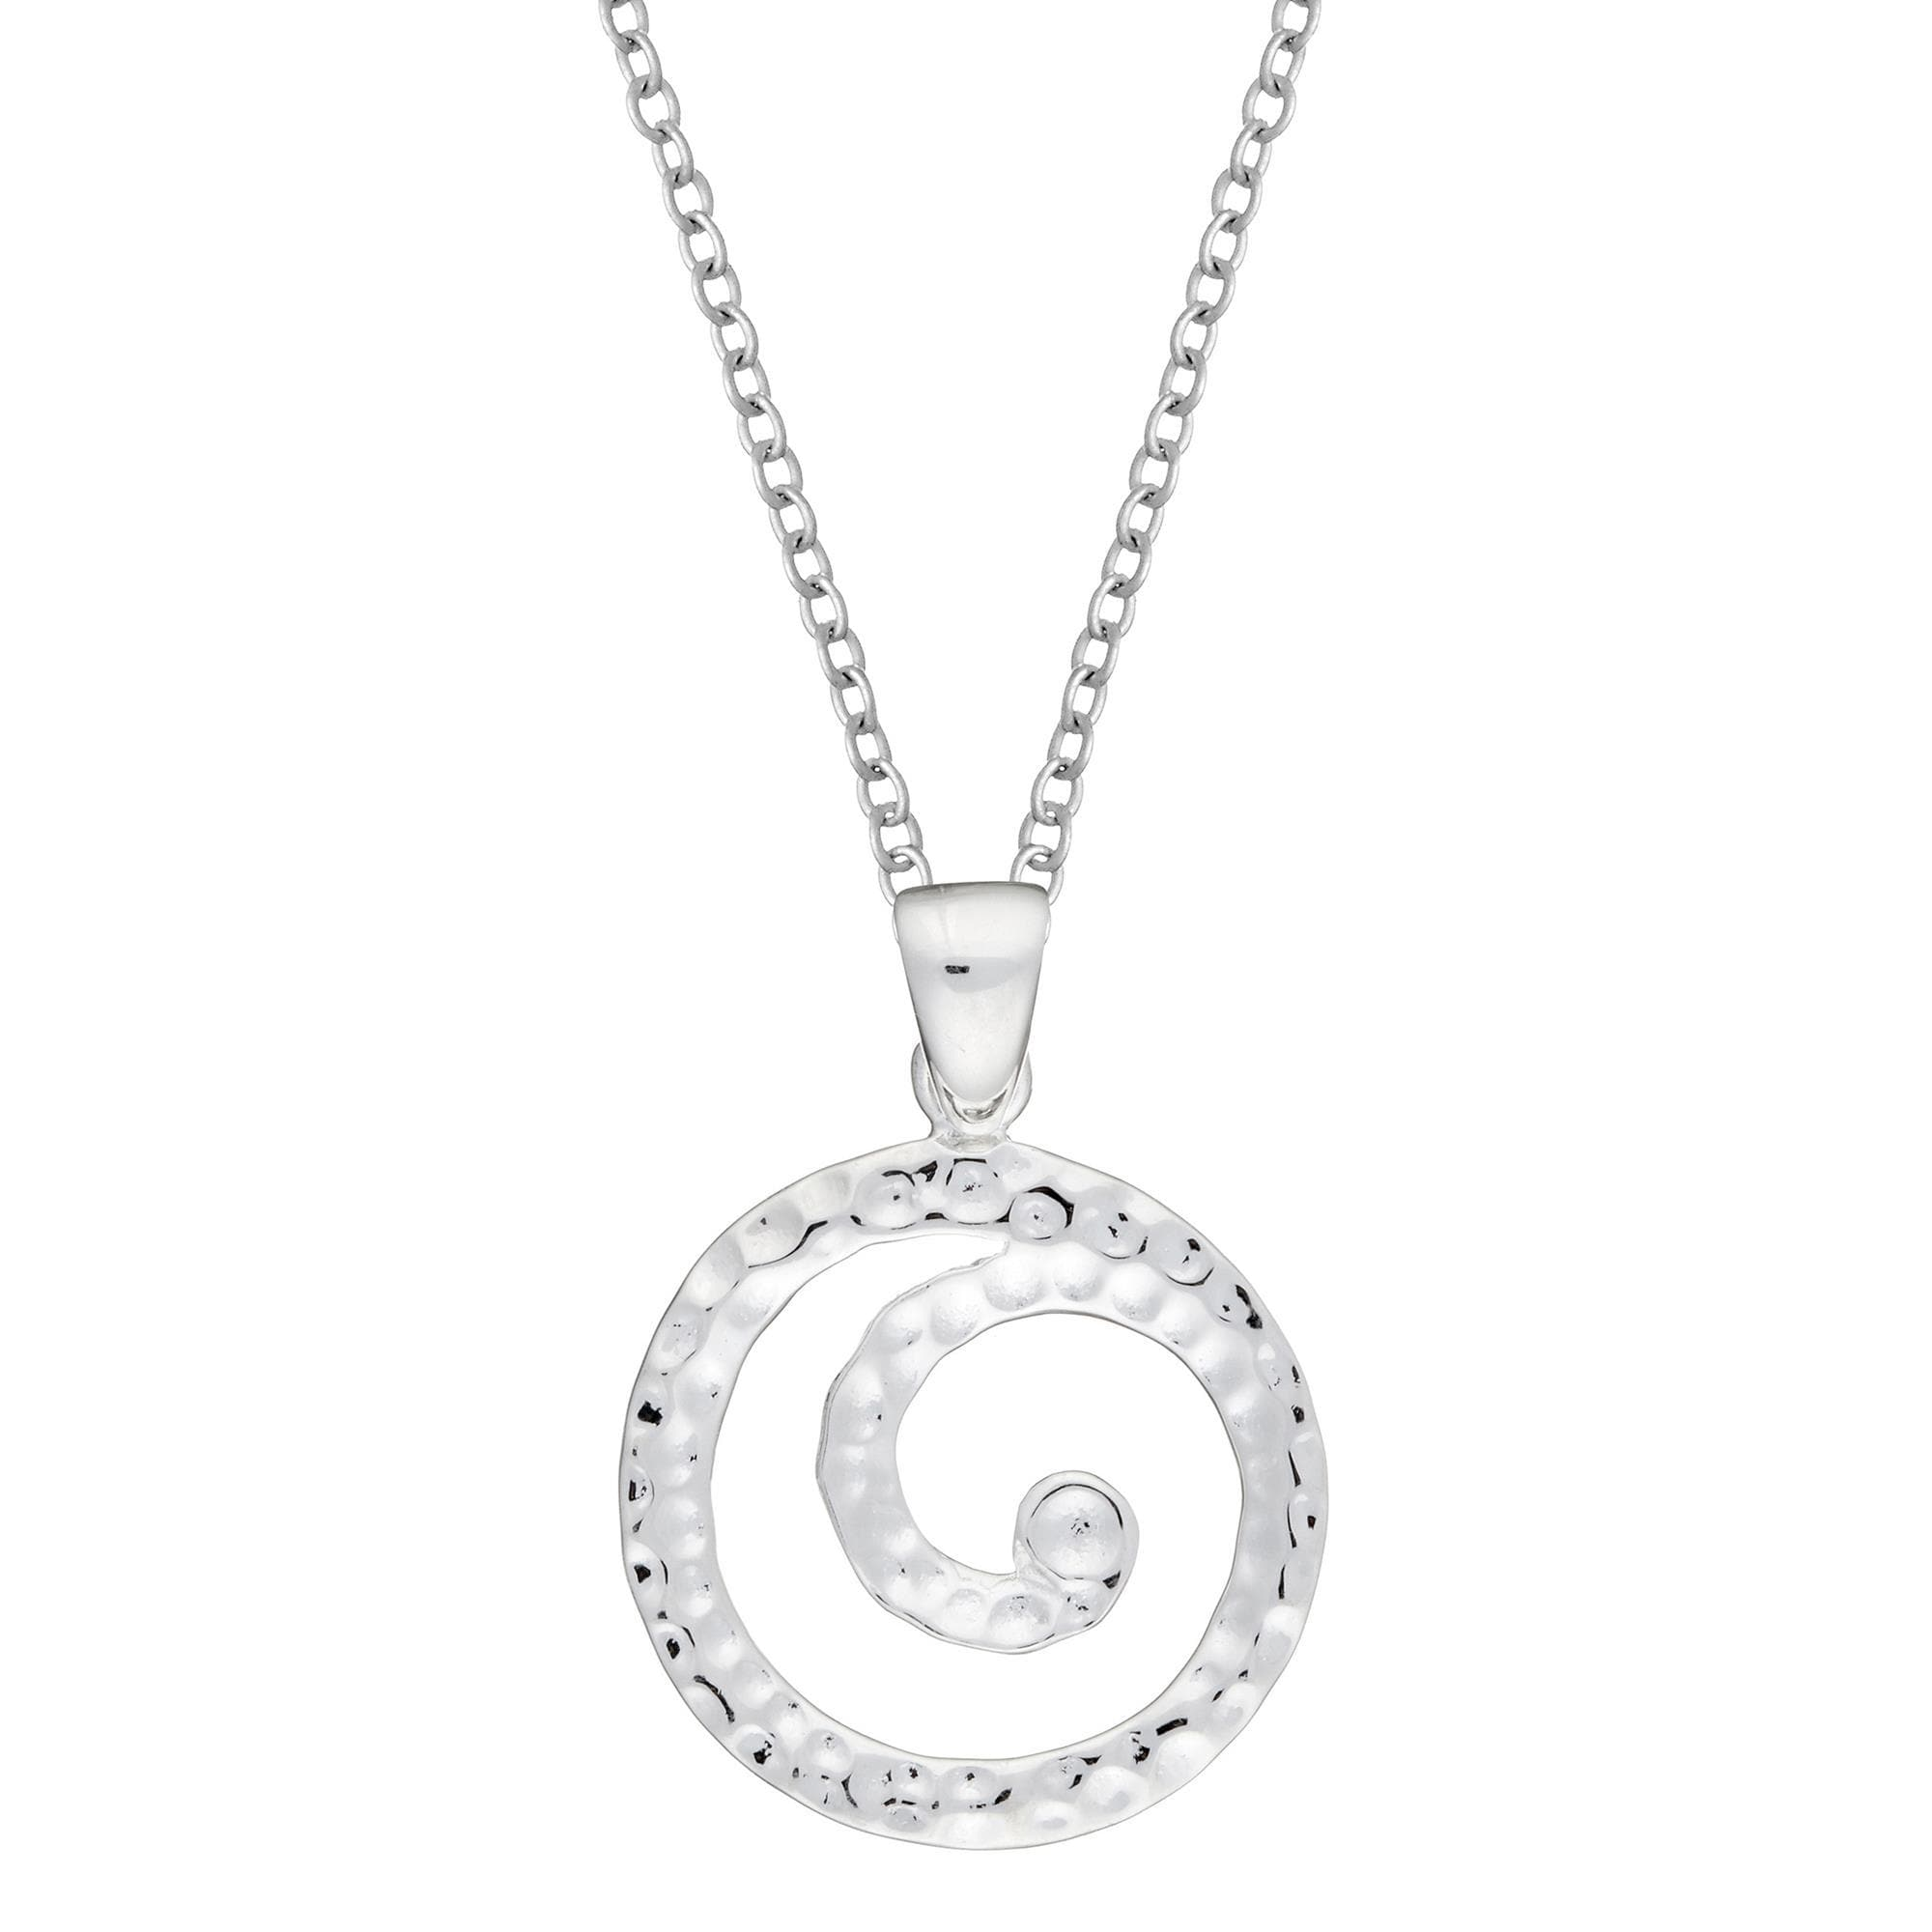 silver online products dreki large buy spiral puzzle at monkey image pendant